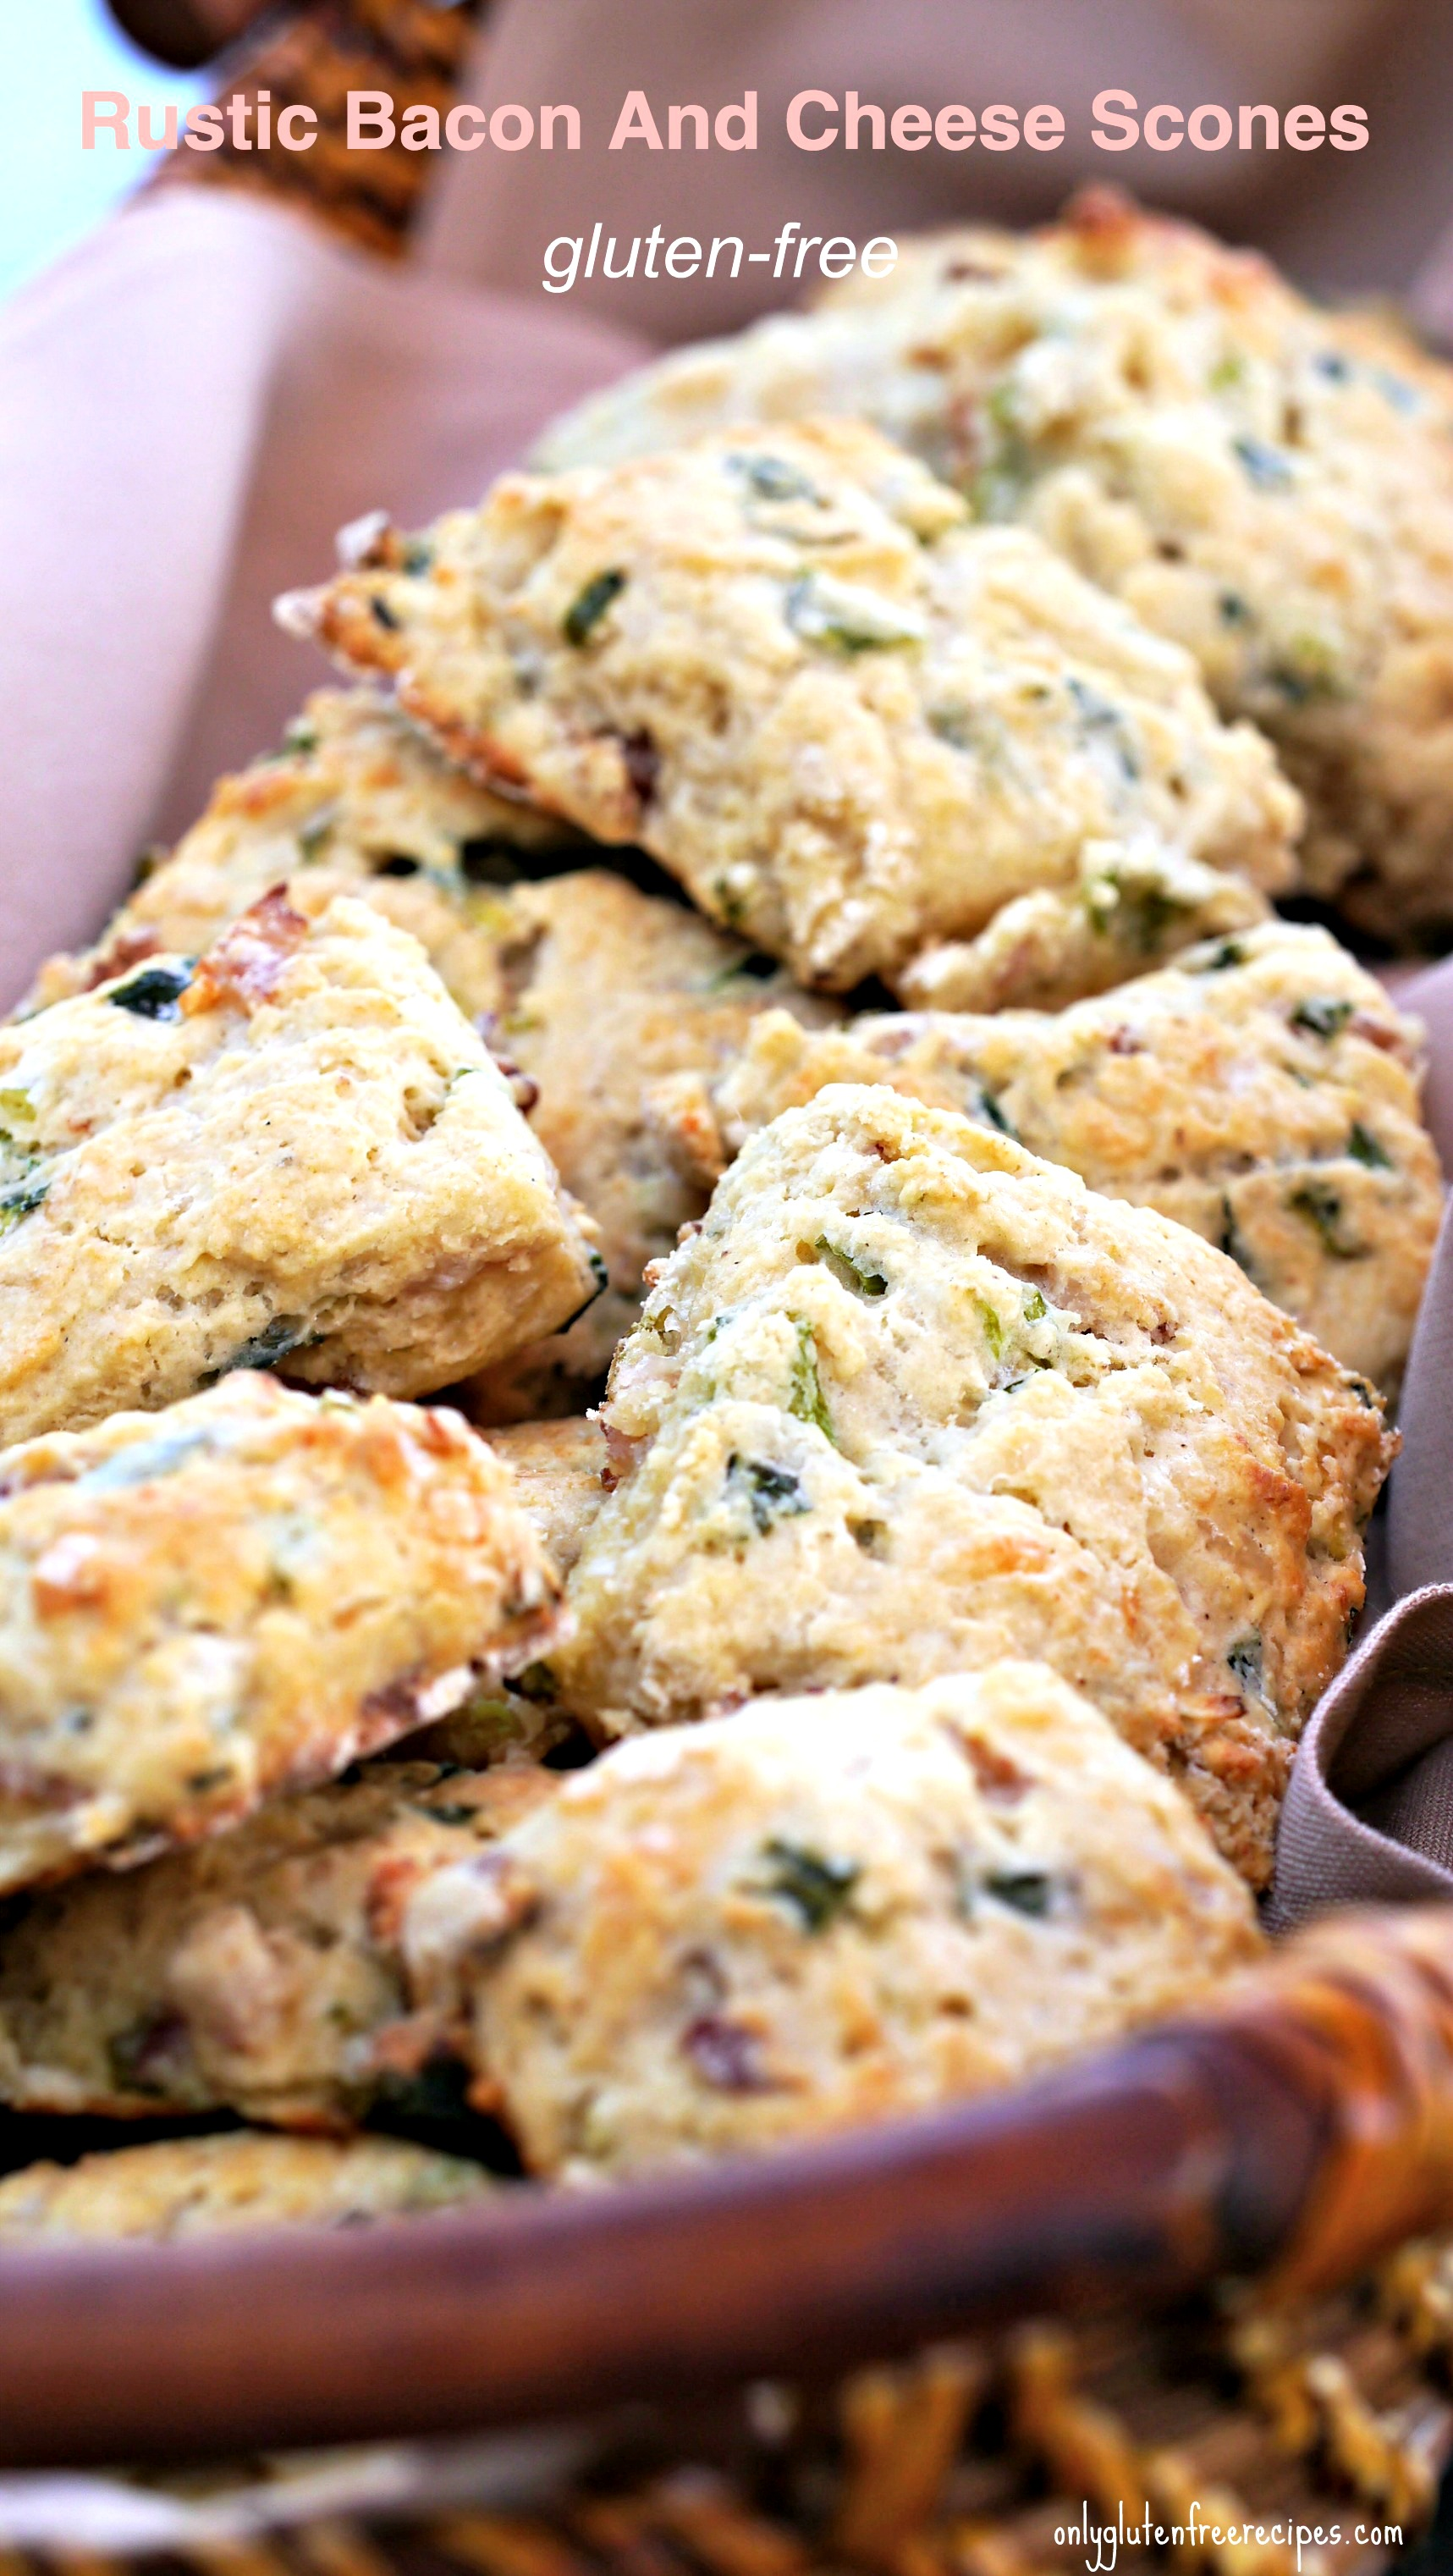 Rustic Gluten-Free Bacon And Cheese Scones